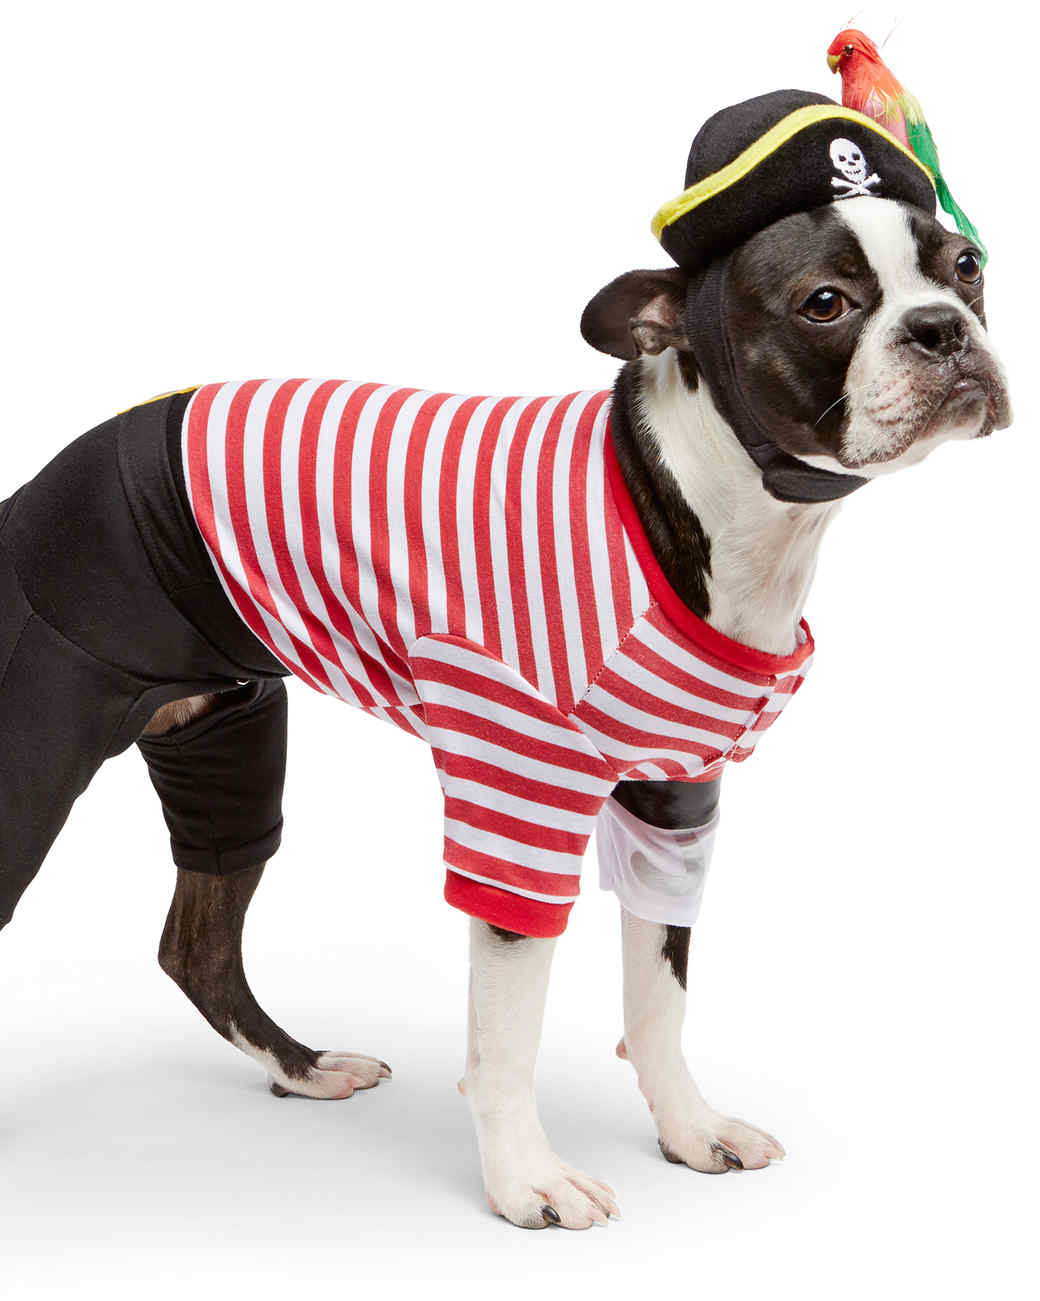 Cute Dog Halloween Costumes: Matching Owner And Dog Costumes For A Pet-rifyingly Cute